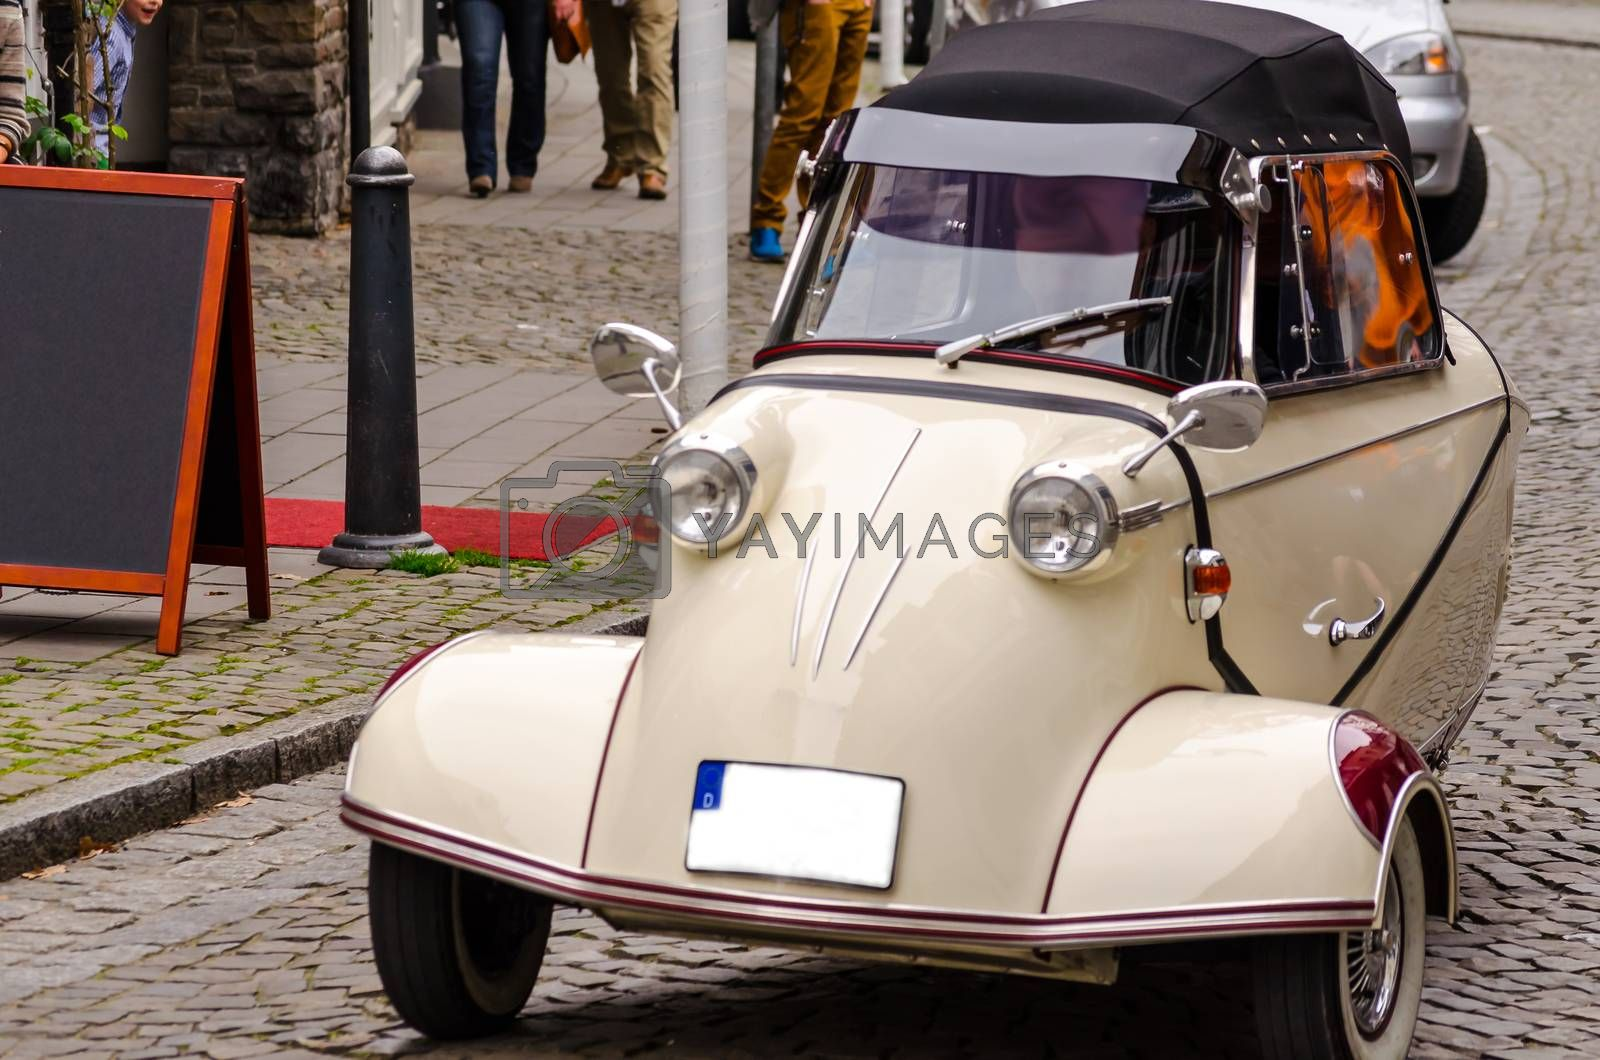 Essen Kettwig, Nrw, Germany - March 30, 2014: Essen Kettwig downtown, Messerschmitt cabin scooter on a city transit at a oldtimer rally.  Produced by the Messerschmitt company.  Designer of the vehicle was the engineer Fritz Fend.